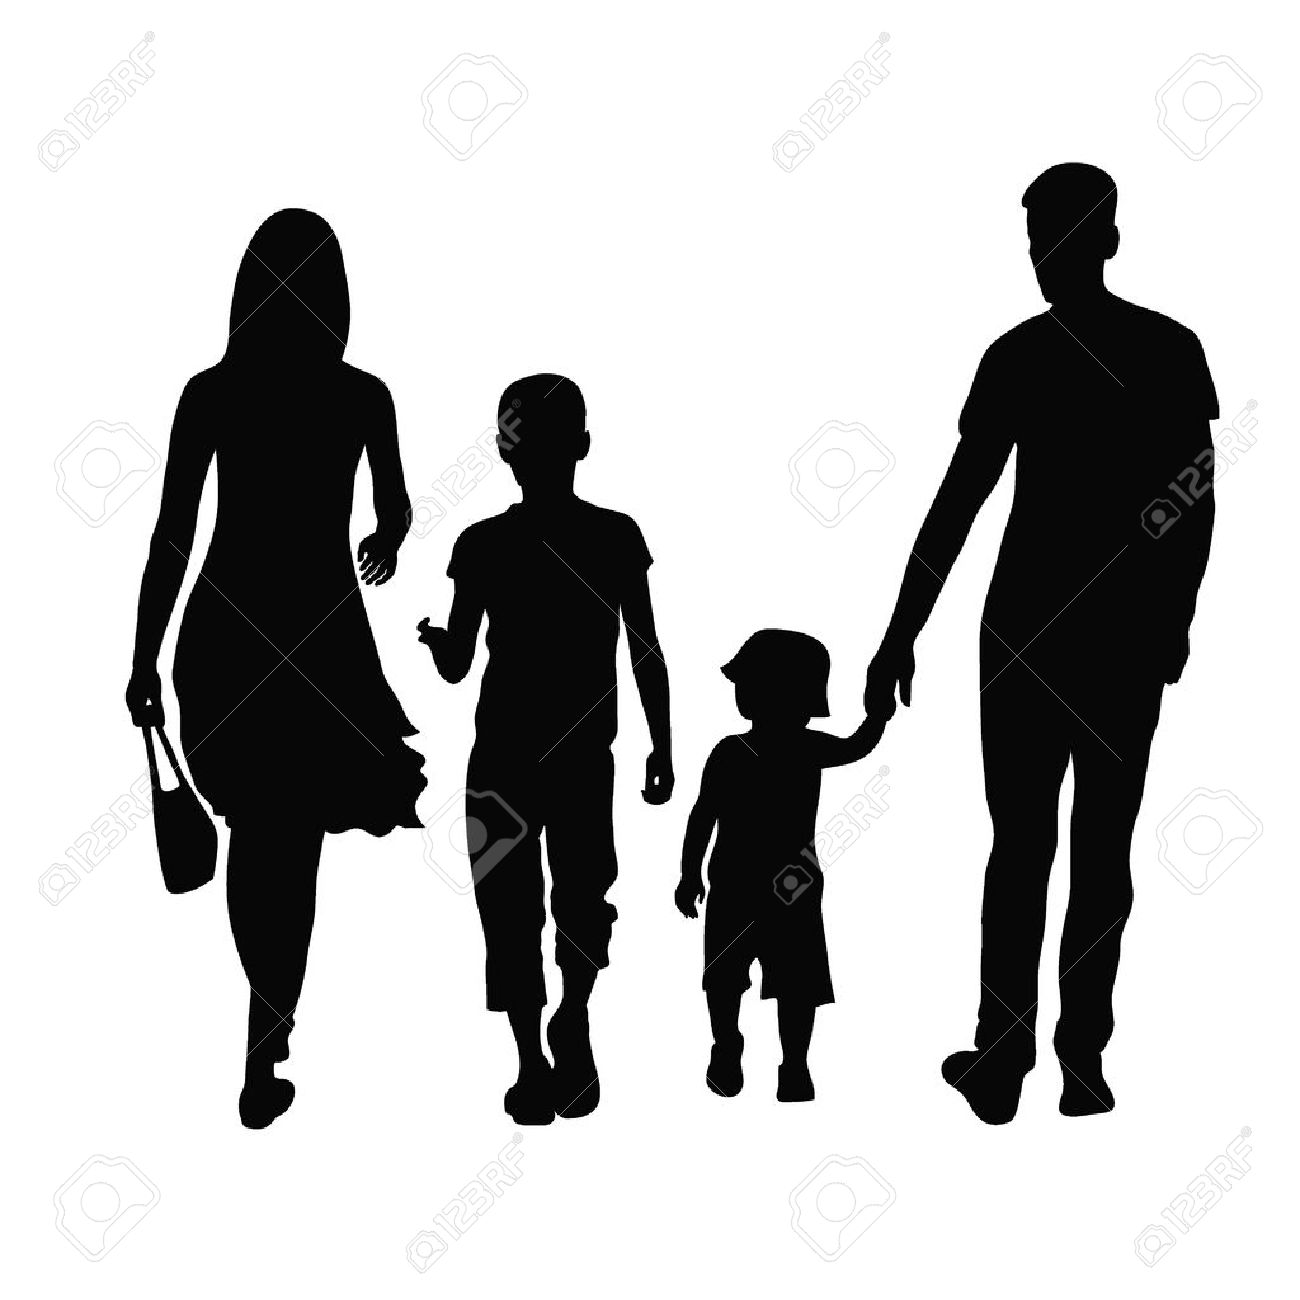 Silhouette of parents and children Stock Vector - 24687954